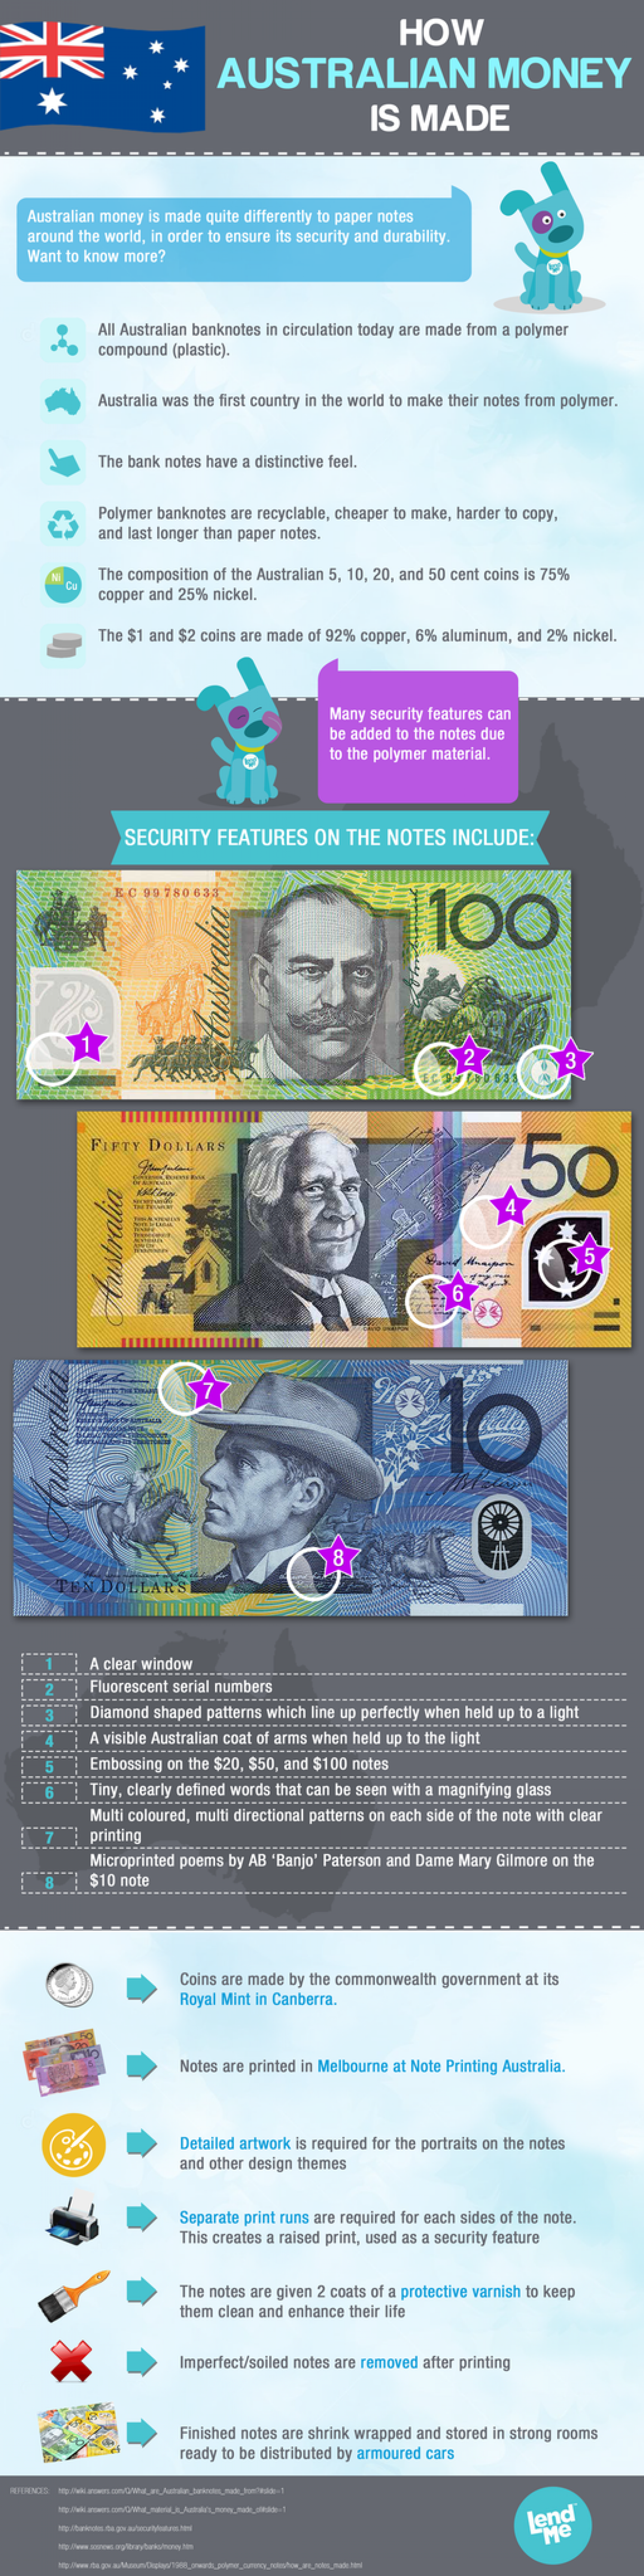 How Australian Money is Made Infographic